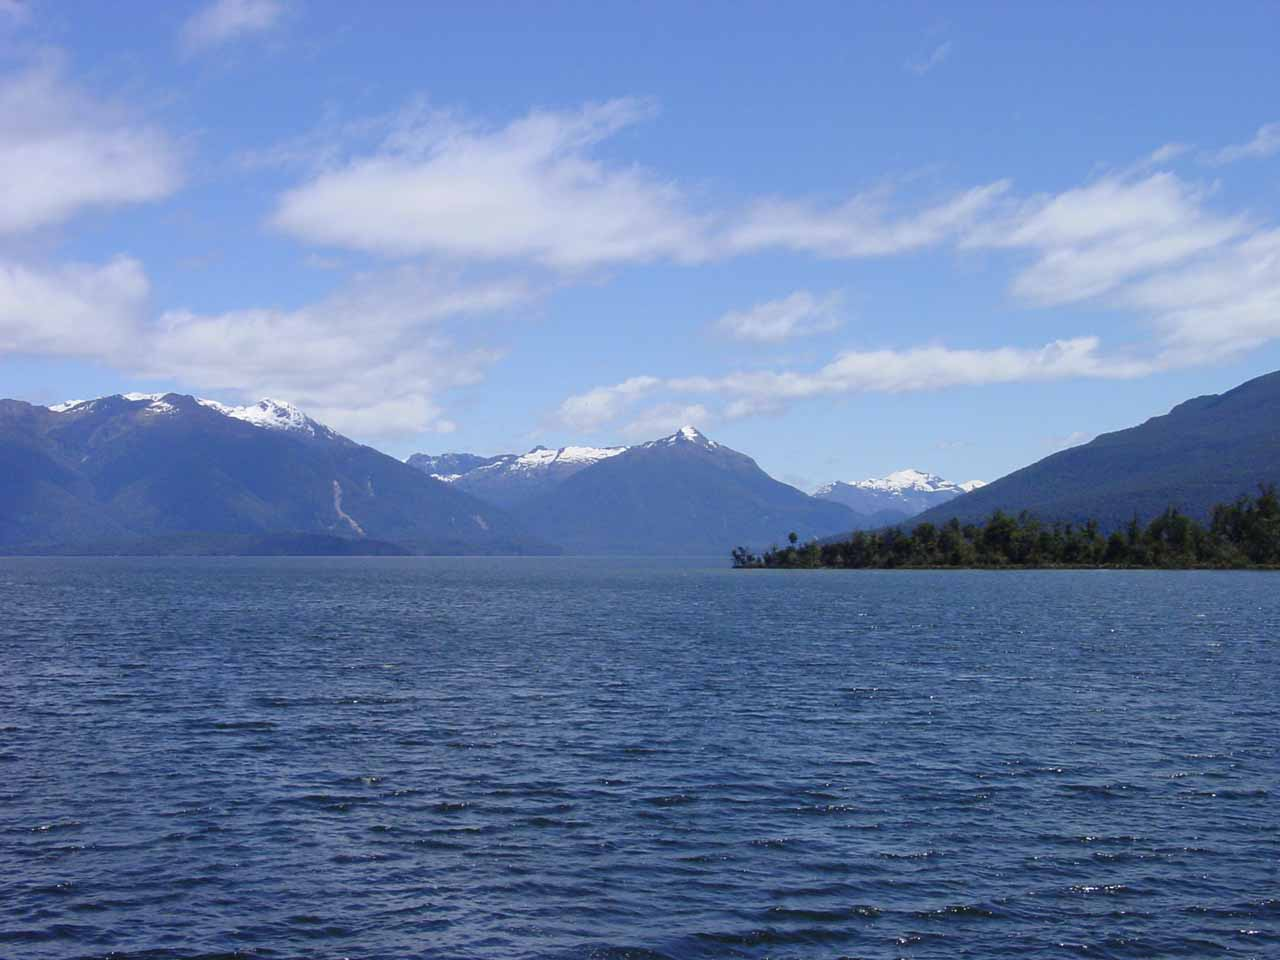 Looking across Lake Te Anau from Boat Harbour